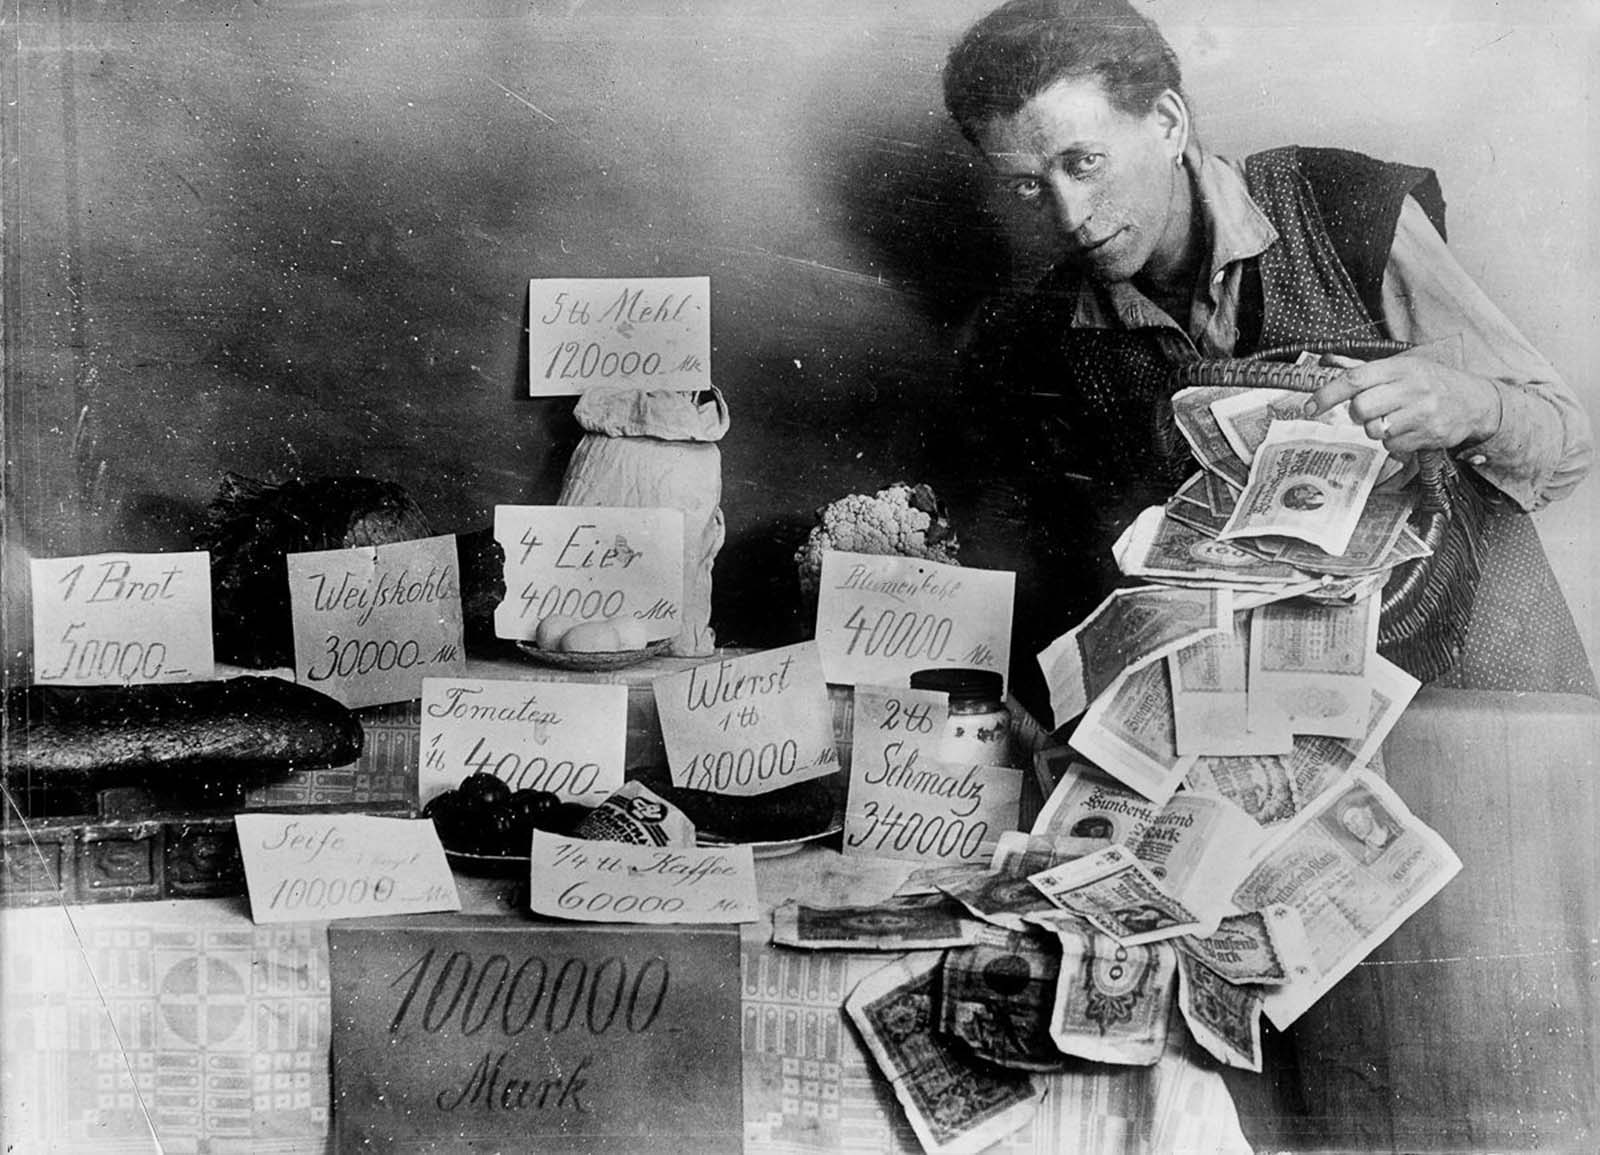 A display of extremely high food prices during hyperinflation.